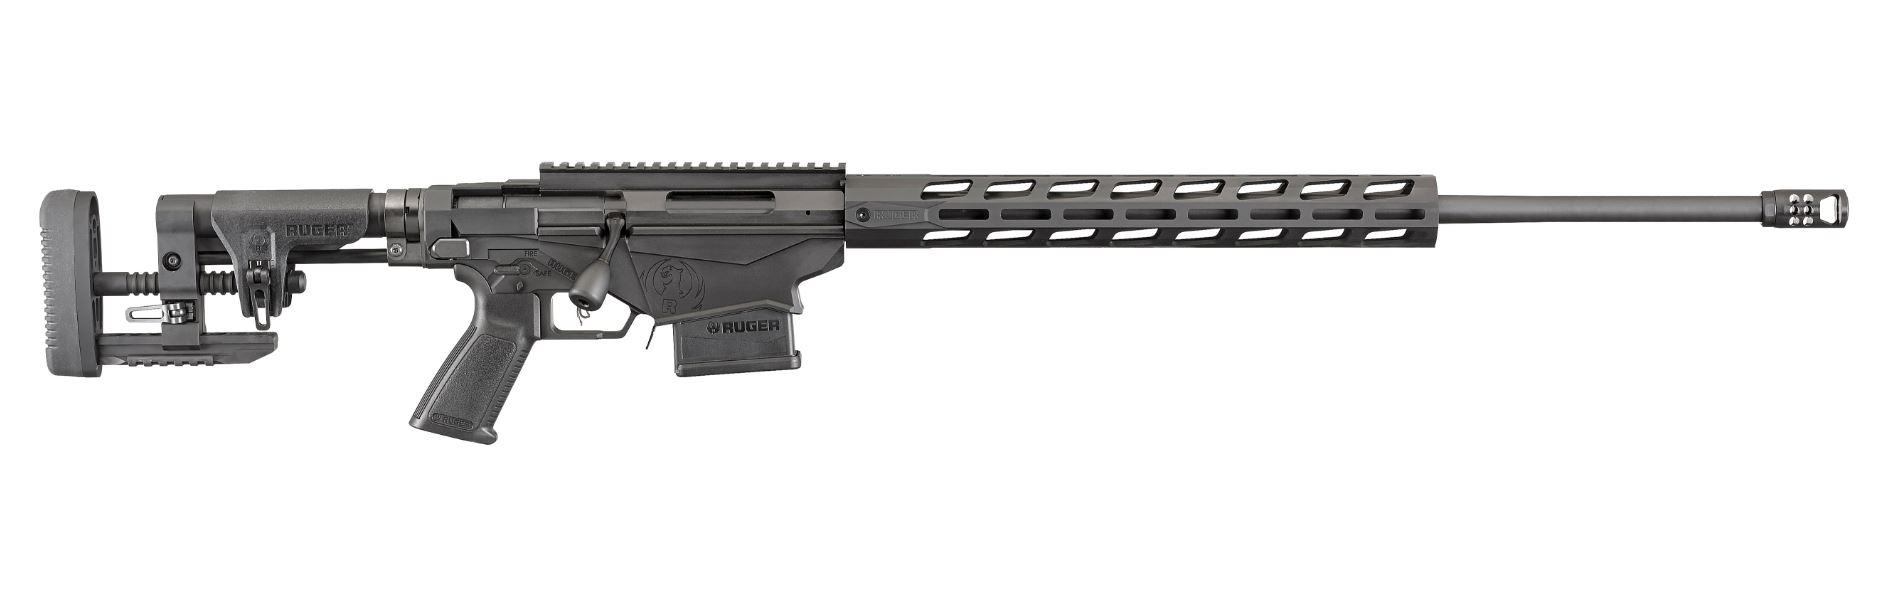 Ruger Rifle Precision-img-3